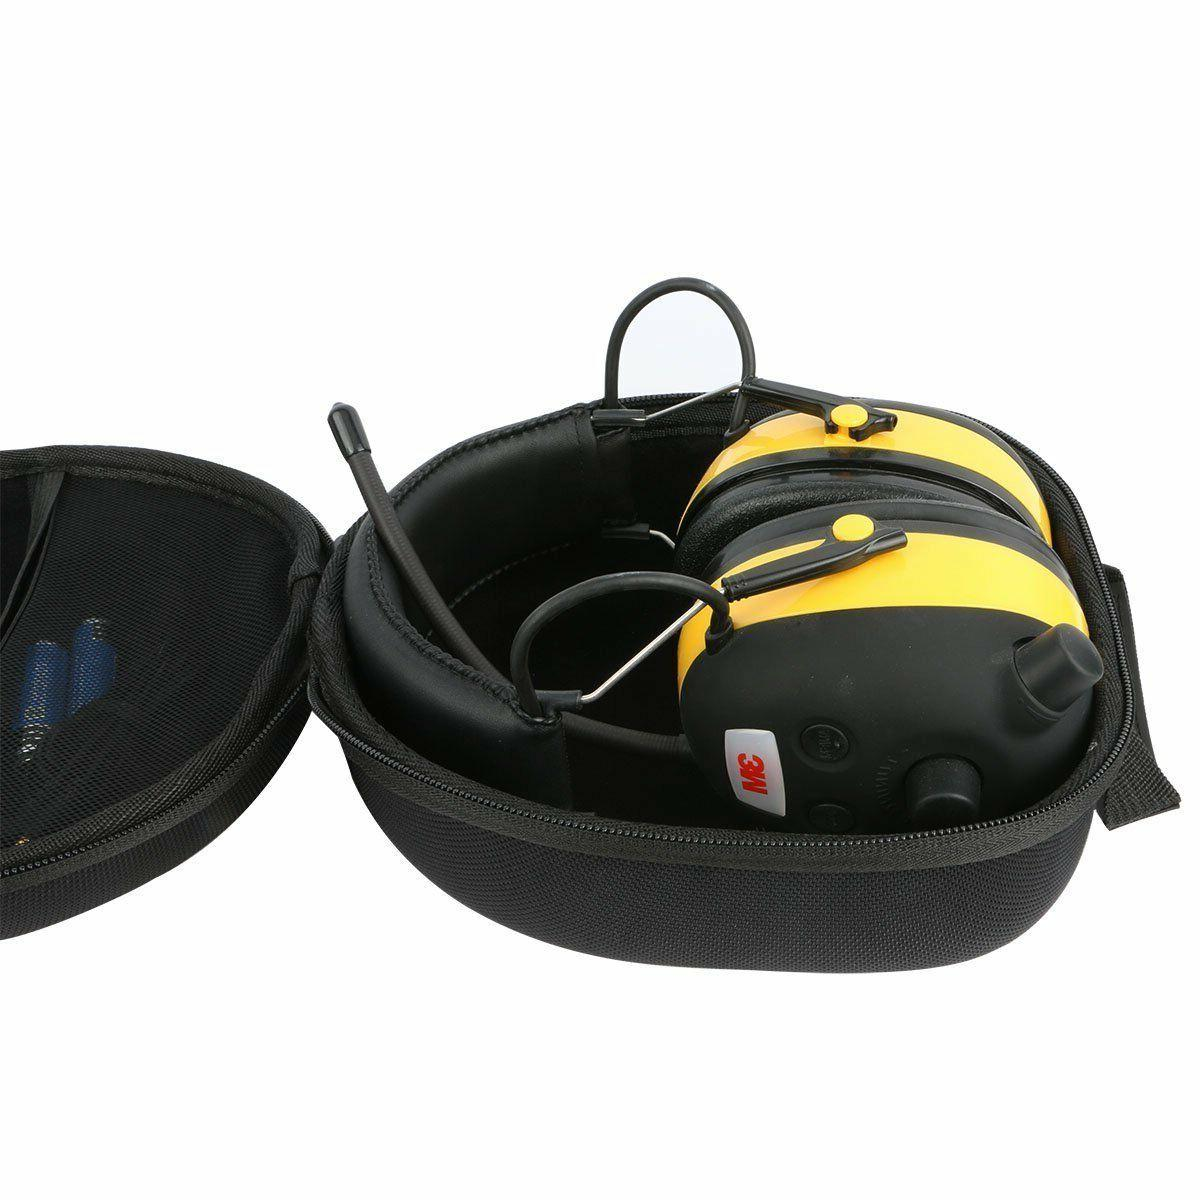 3M WorkTunes Hearing Protector Bluetooth Technology Hard Case